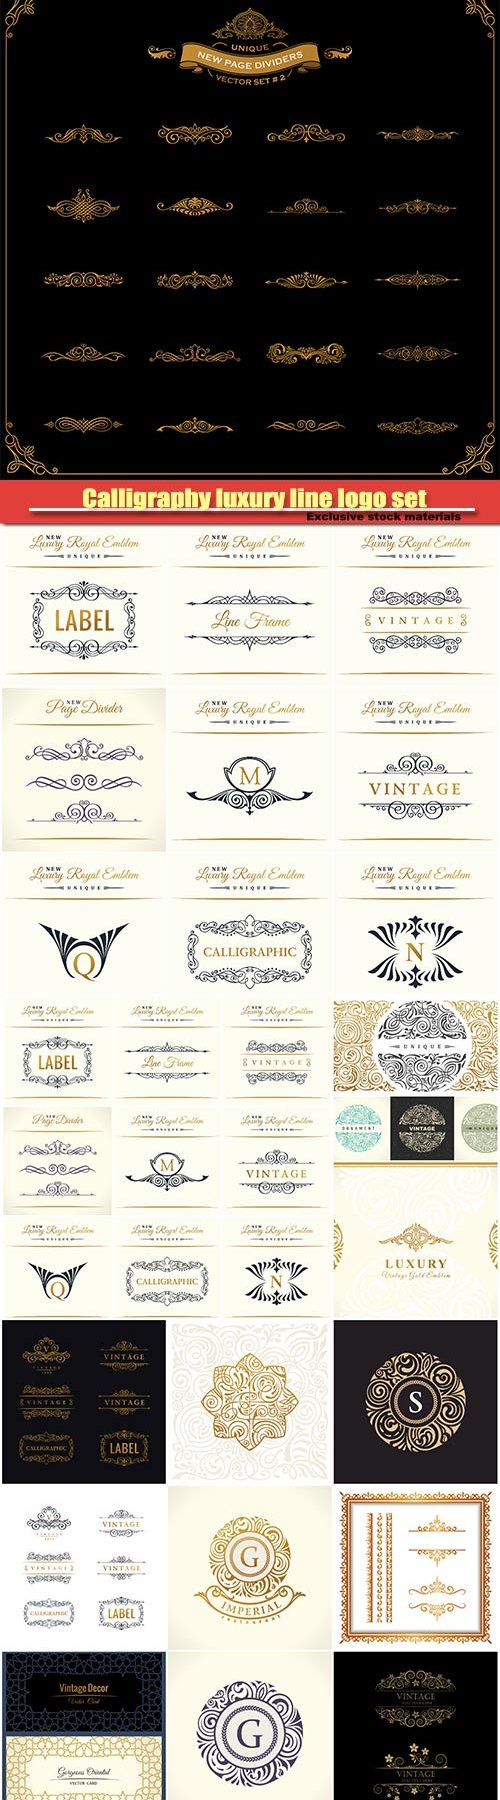 Calligraphy luxury line logo set, gold frame, emblem monogram, vintage design